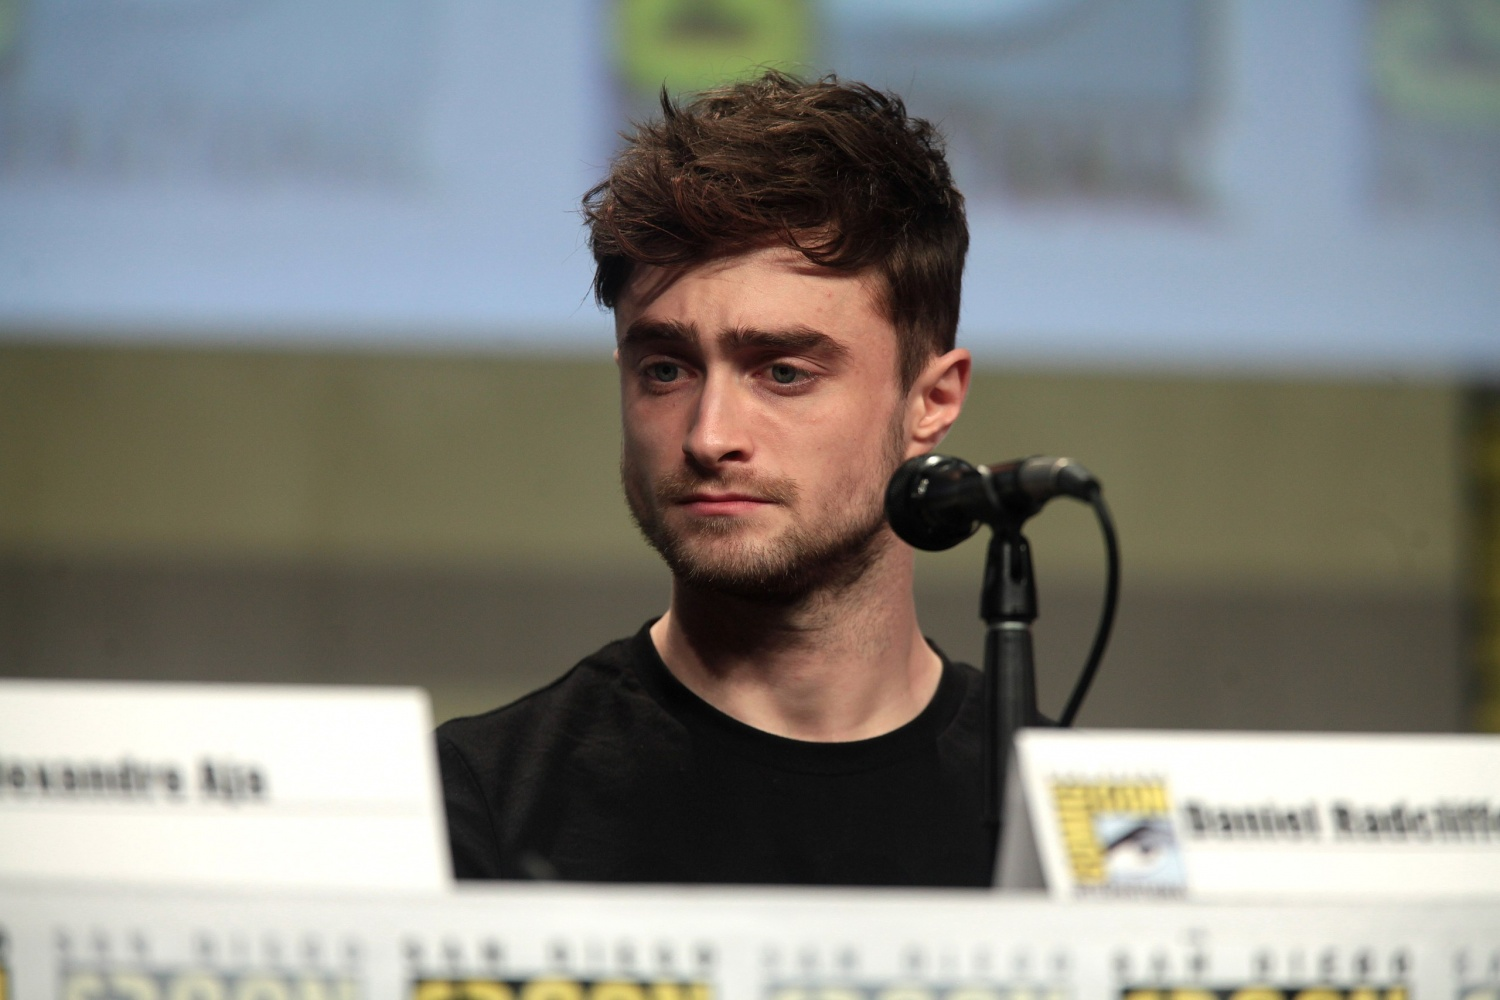 No, Daniel Radcliffe Does Not Have Coronavirus